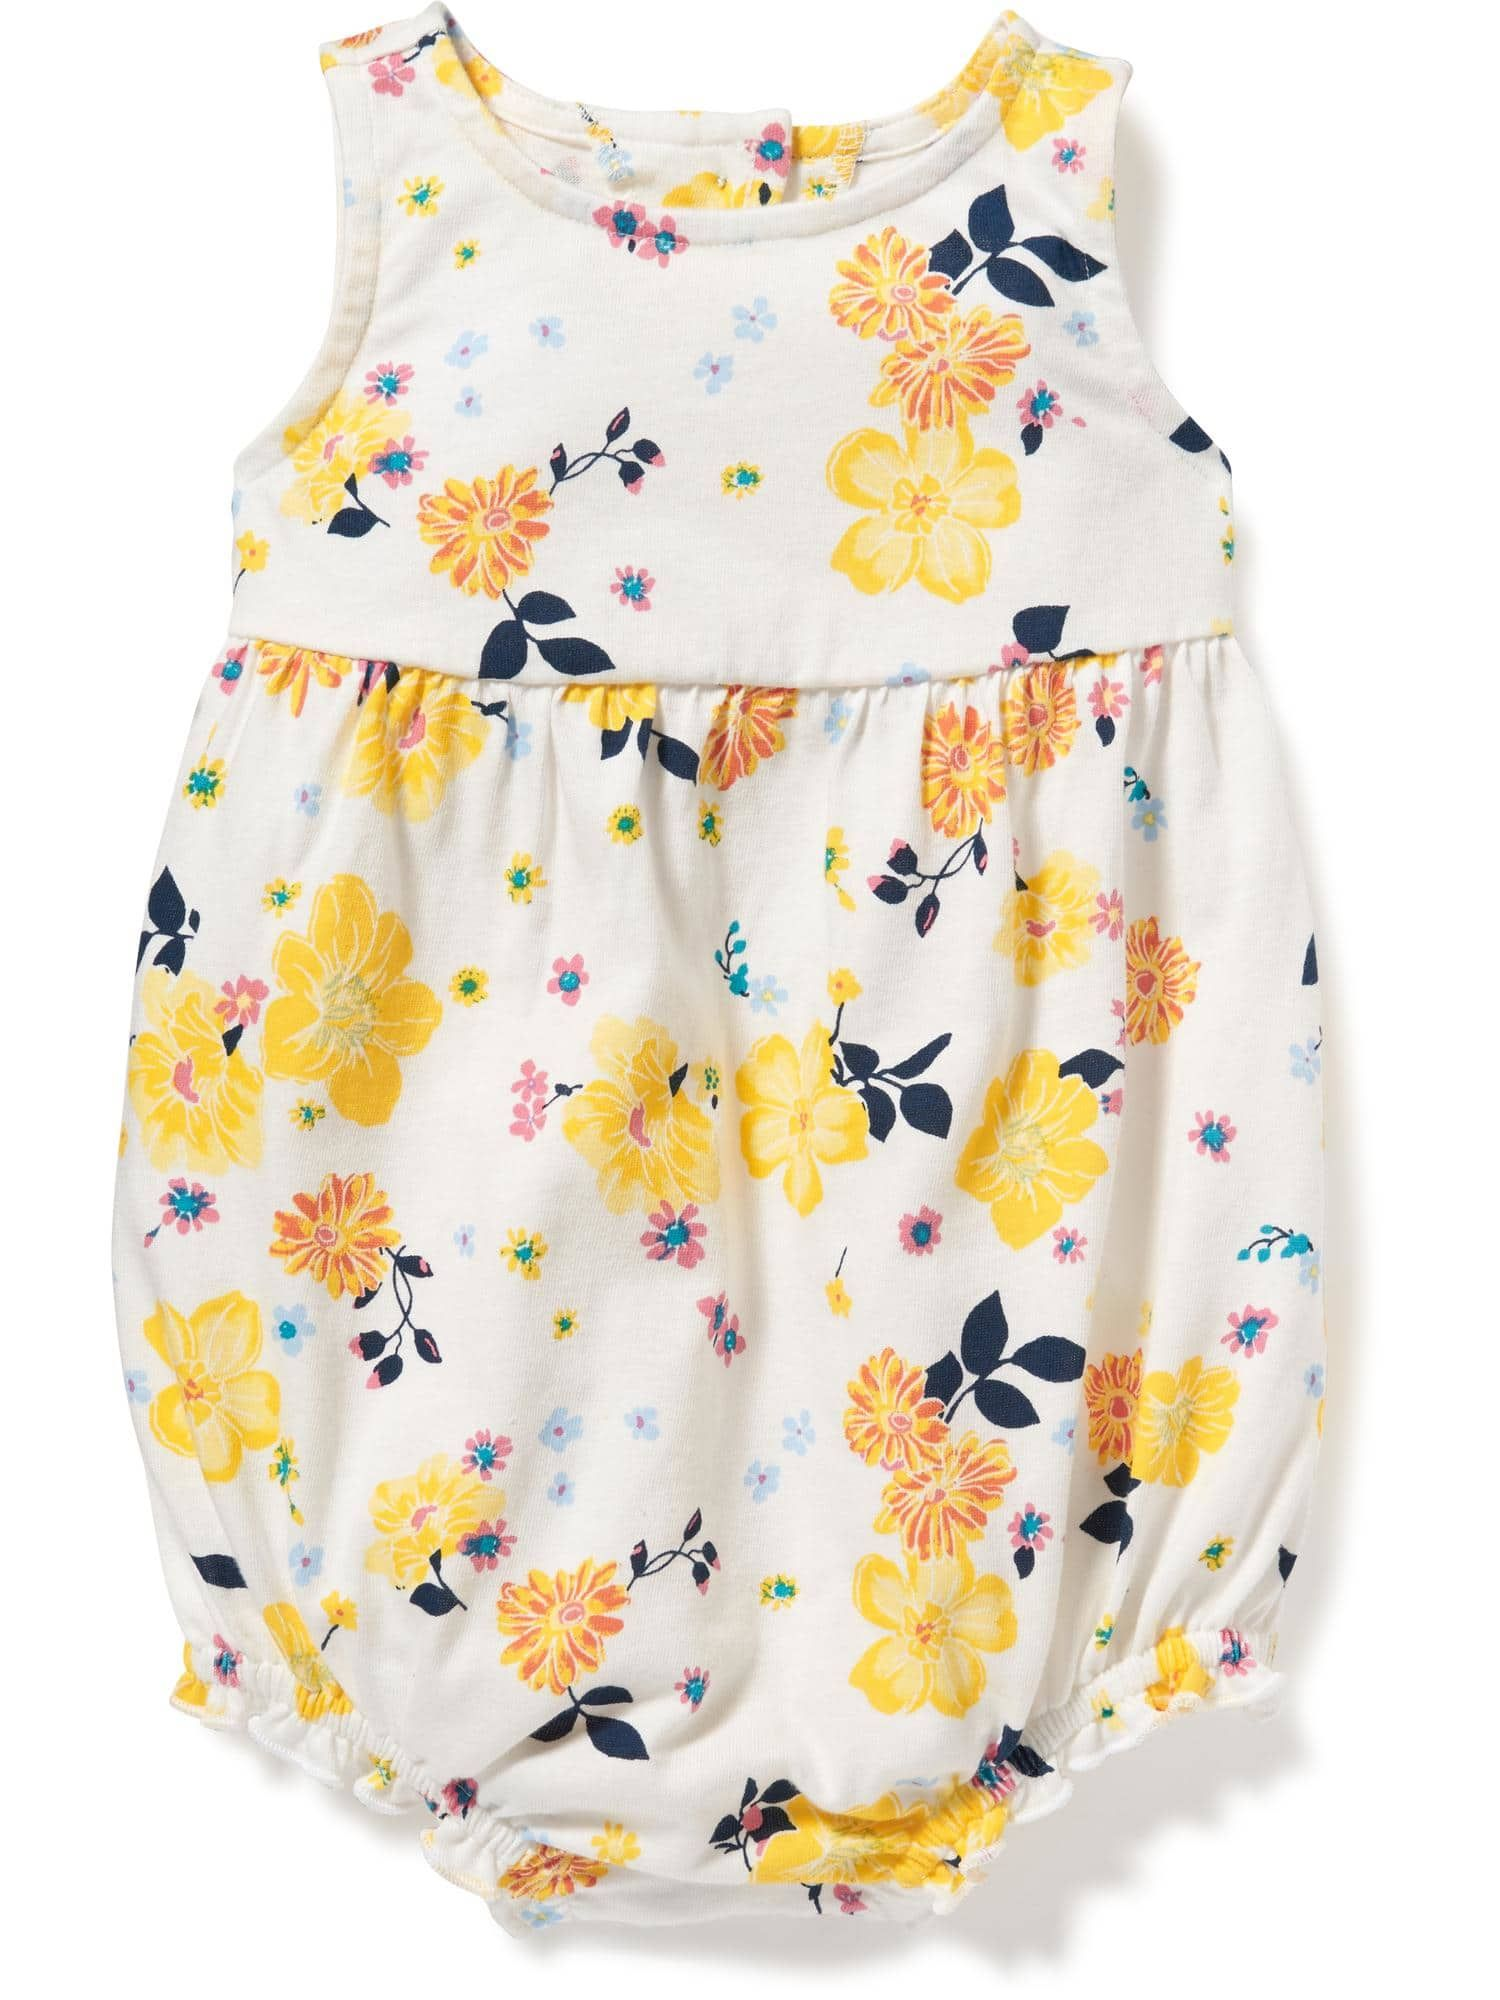 Old Navy $11 Baby Kids Clothing Pinterest